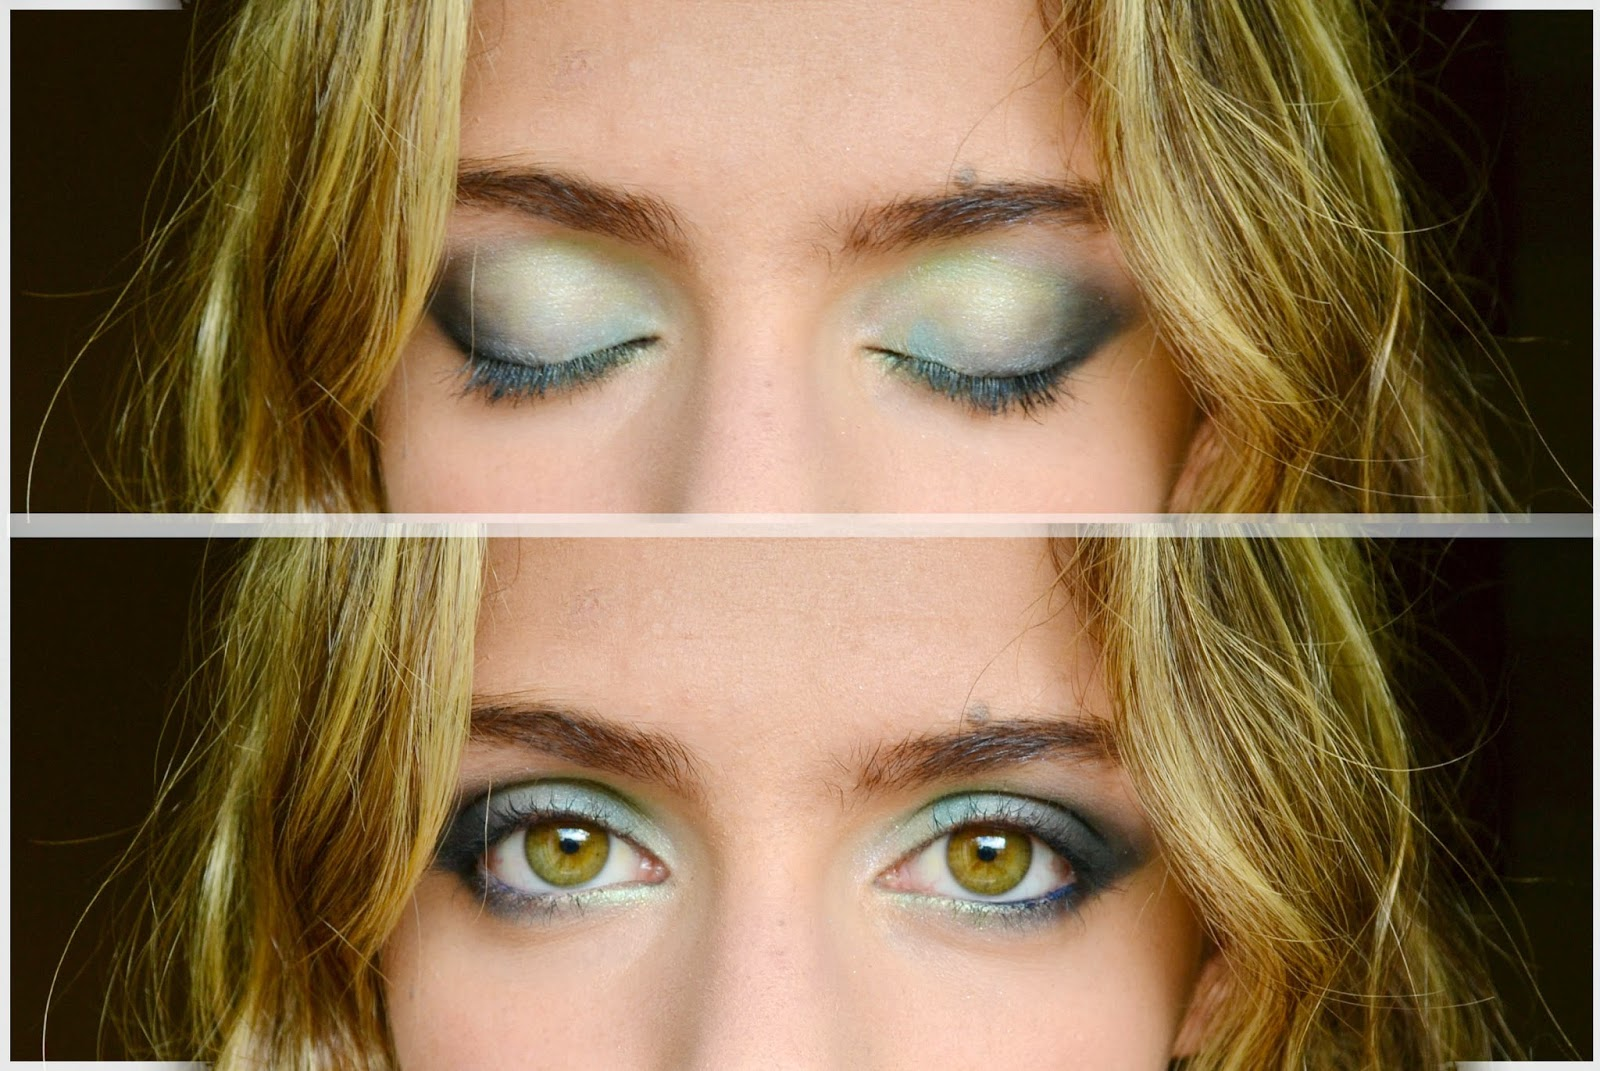 Blue eye shadow, fashionable for green eyes